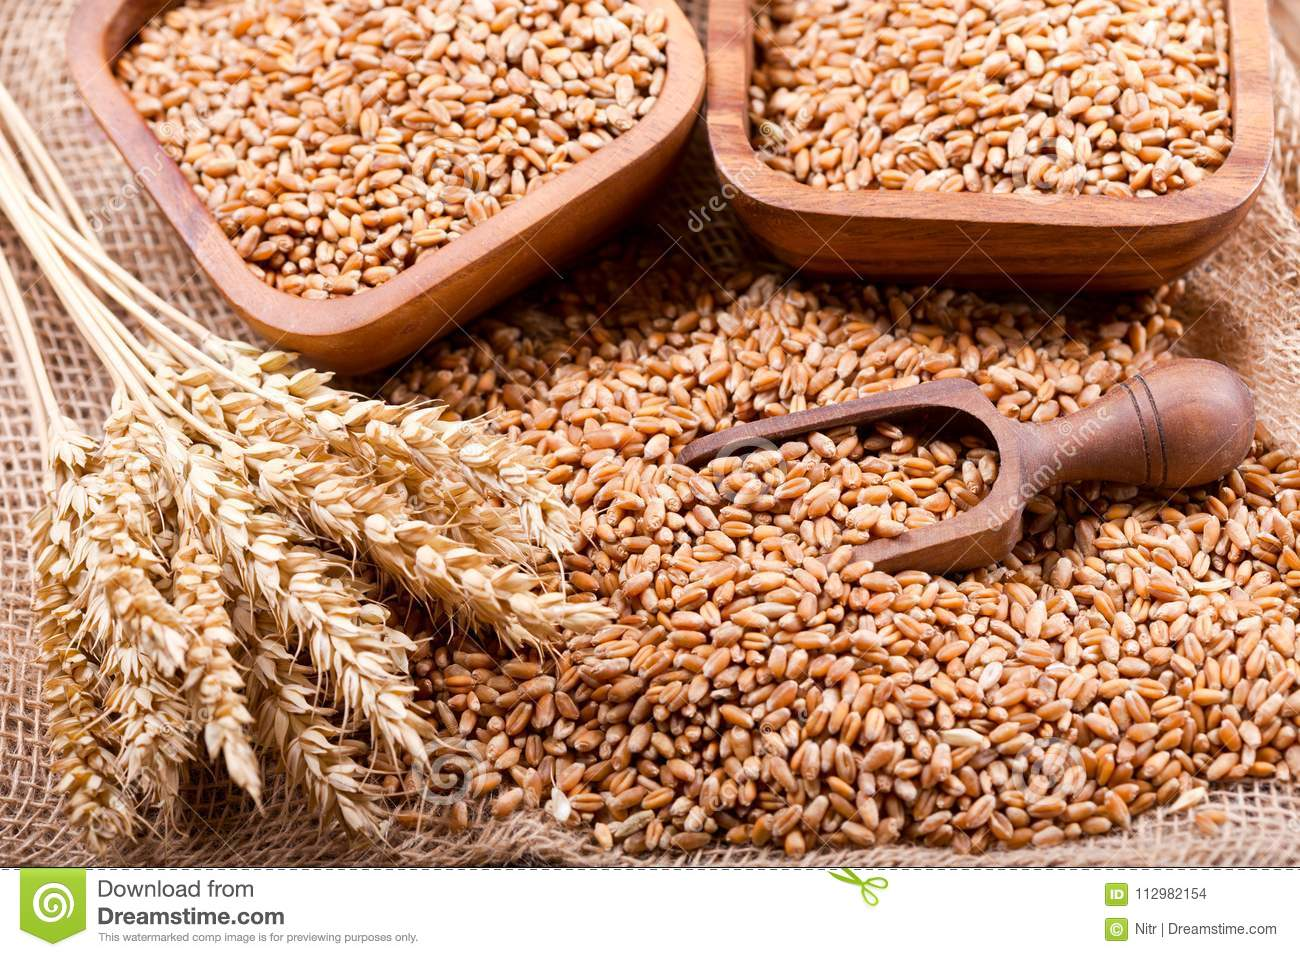 Grains and wheat ears on a wooden table